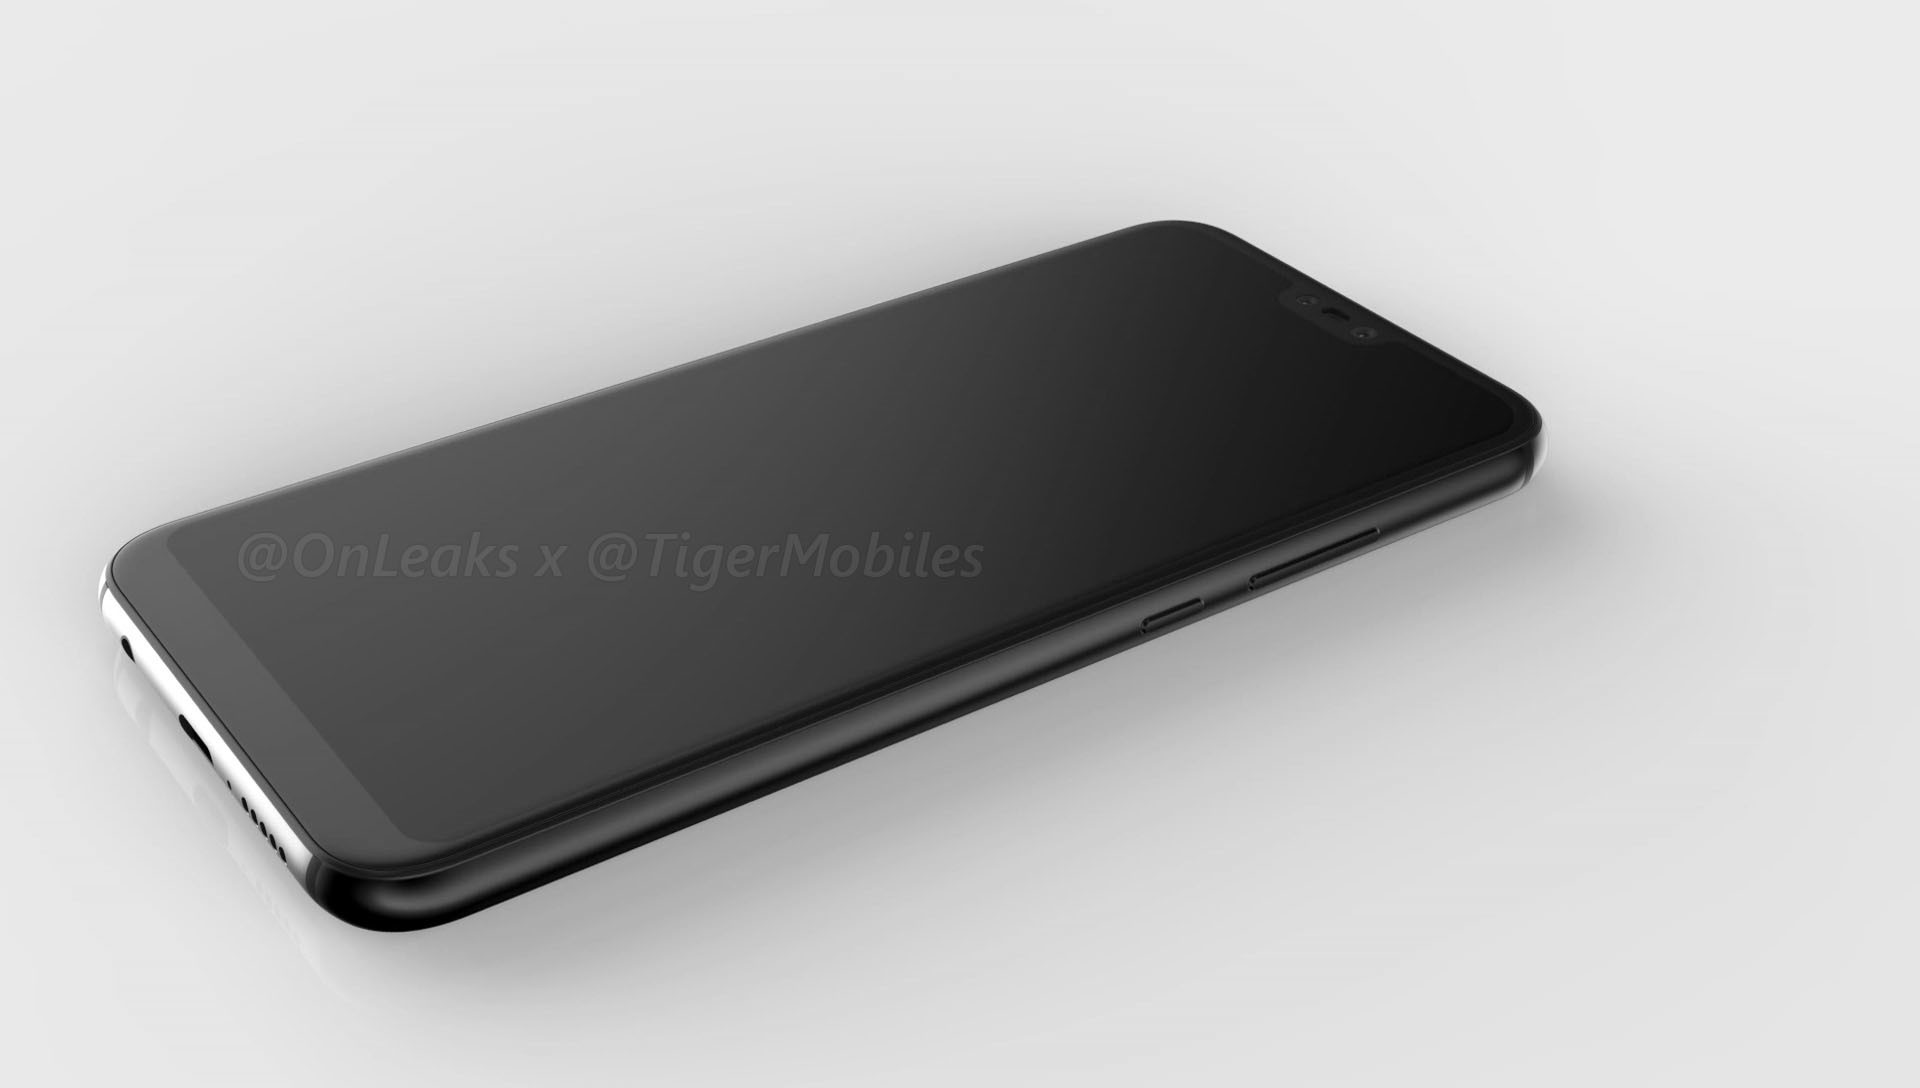 Huawei P20 Plus render leaked, suggests a triple camera setup